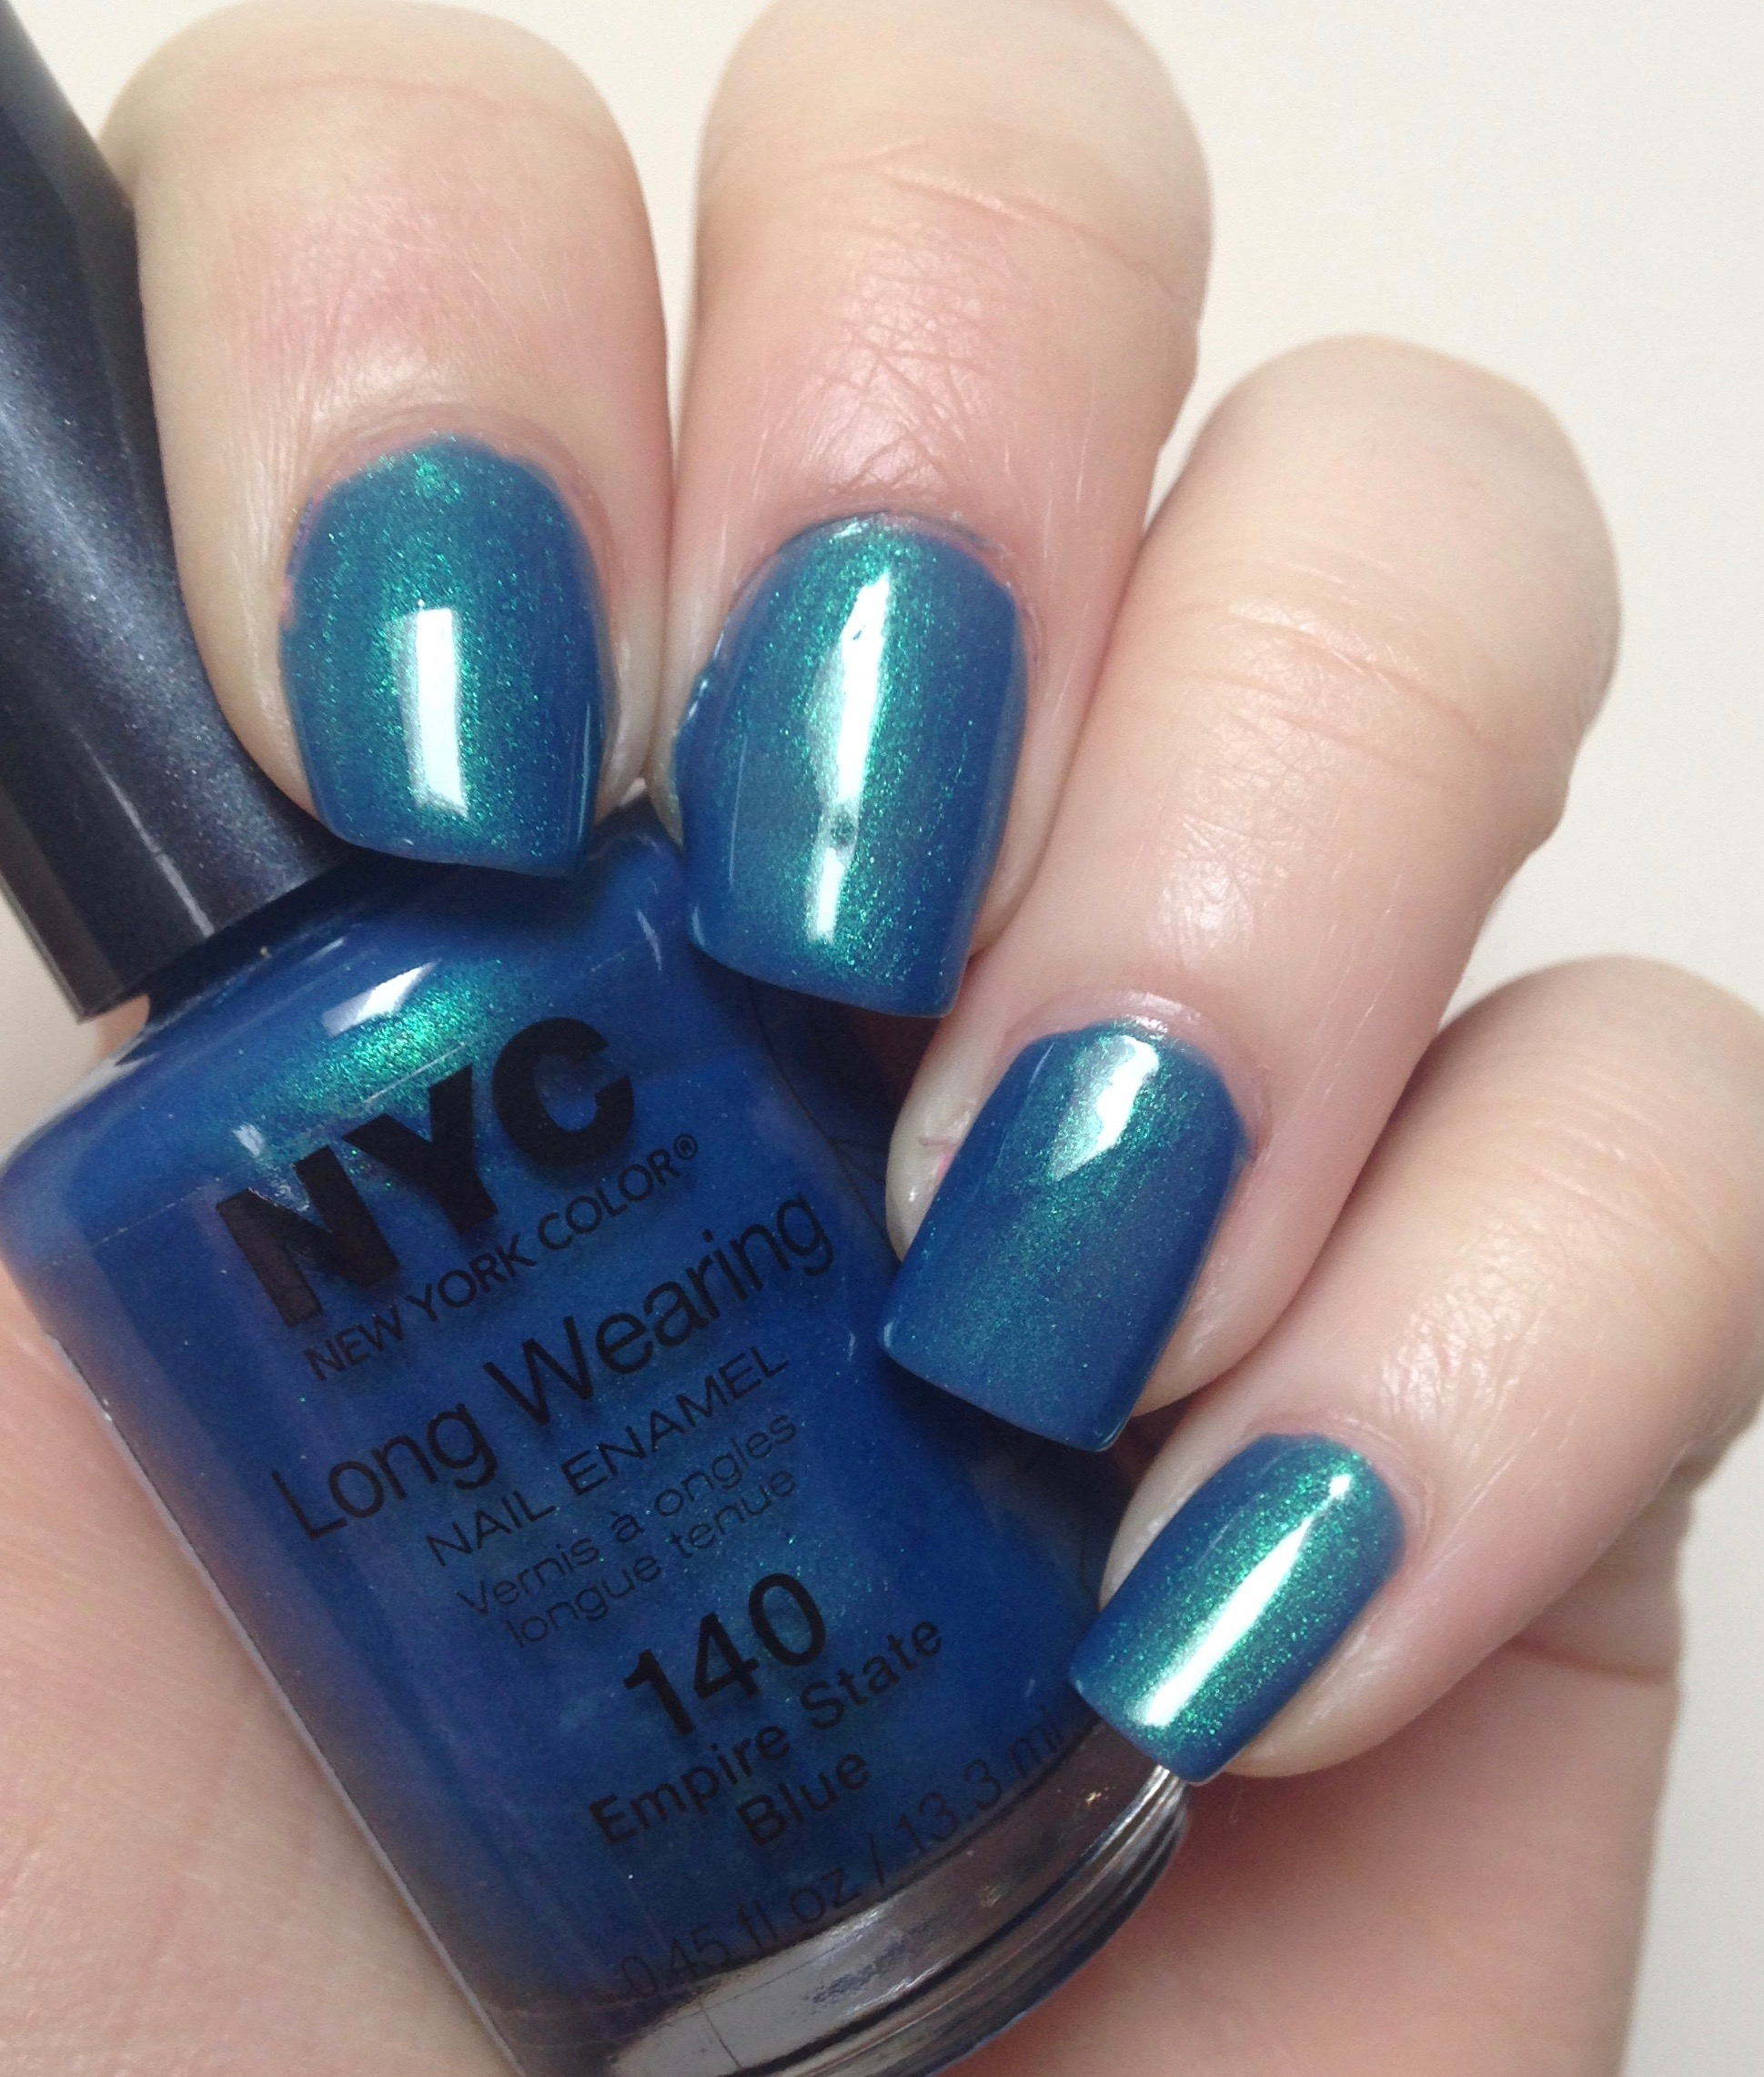 Manicure March | NYC New York Color Long Wearing Nail Enamel in ...